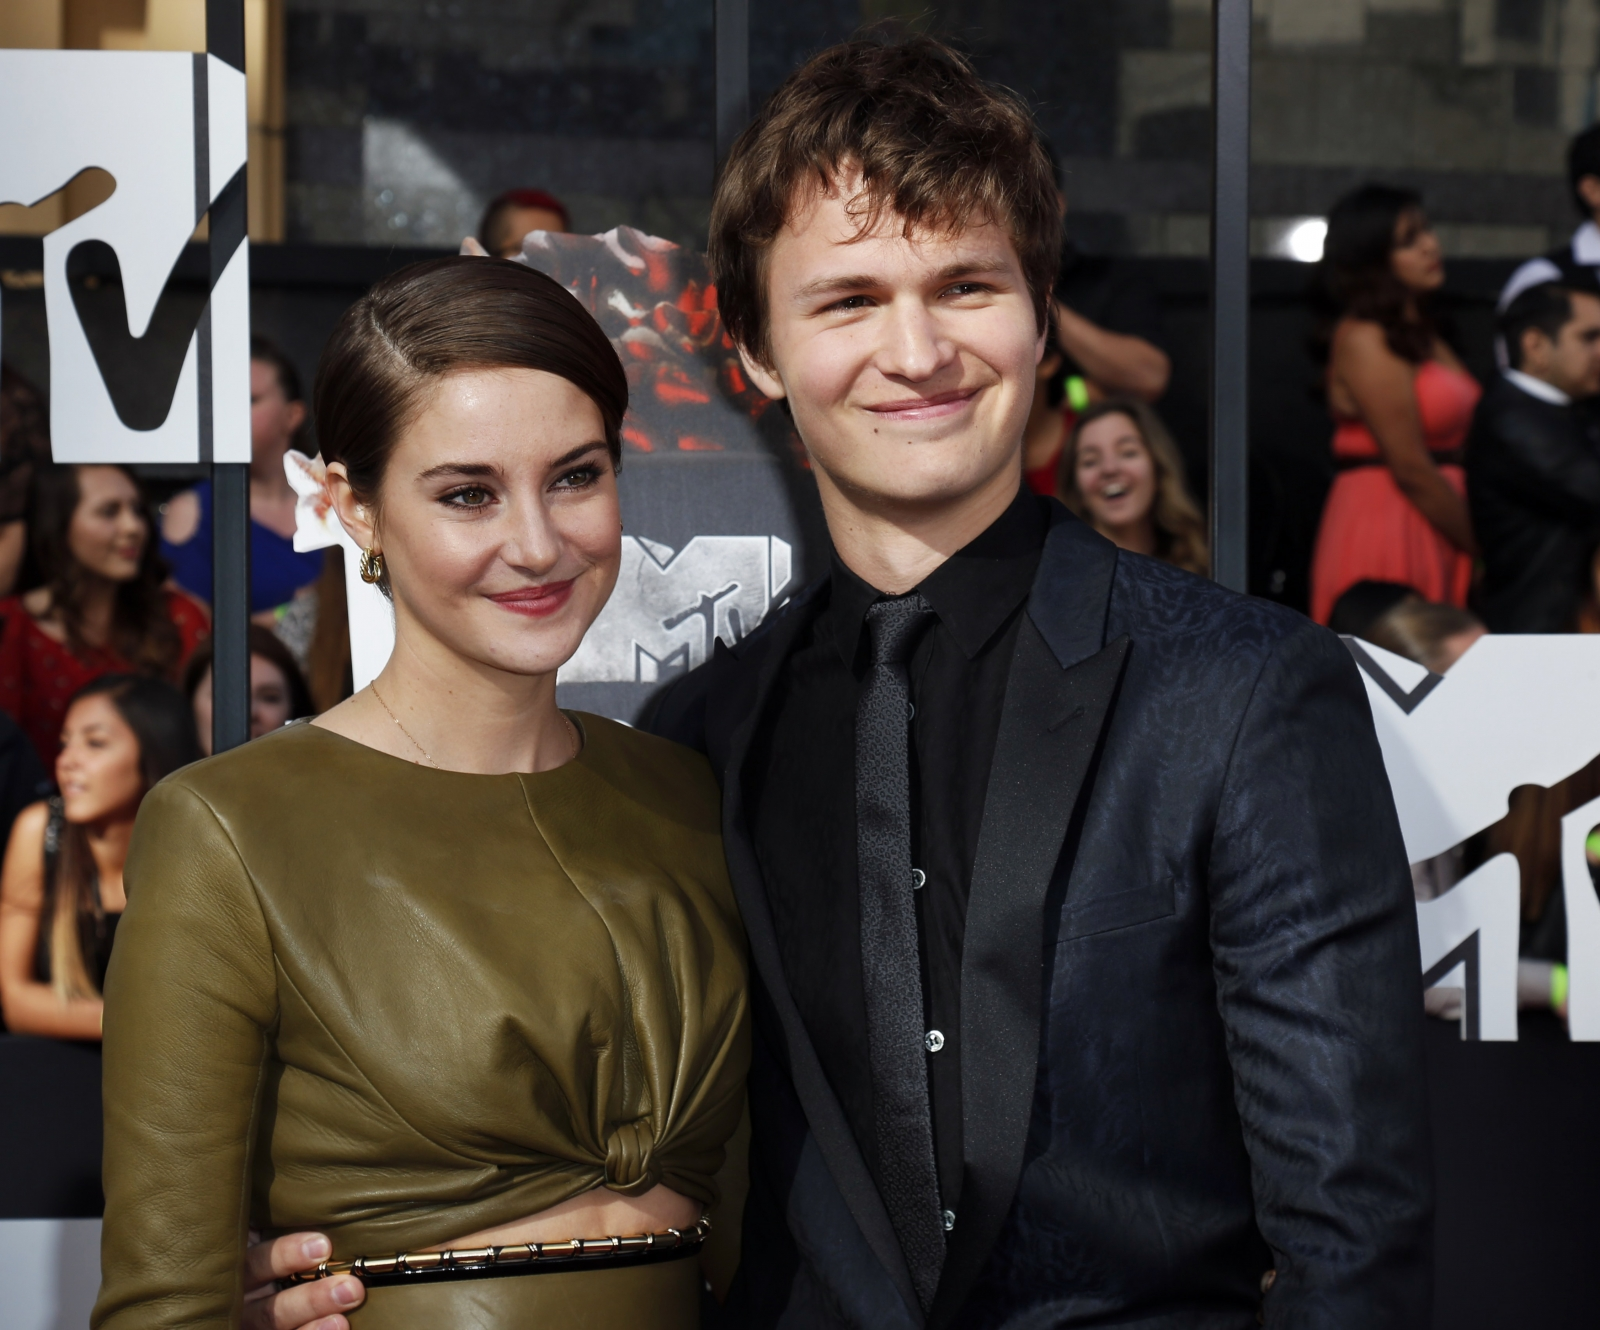 Shailene woodley and ansel elgort dating rumors. que es subdesarrollo economico yahoo dating.